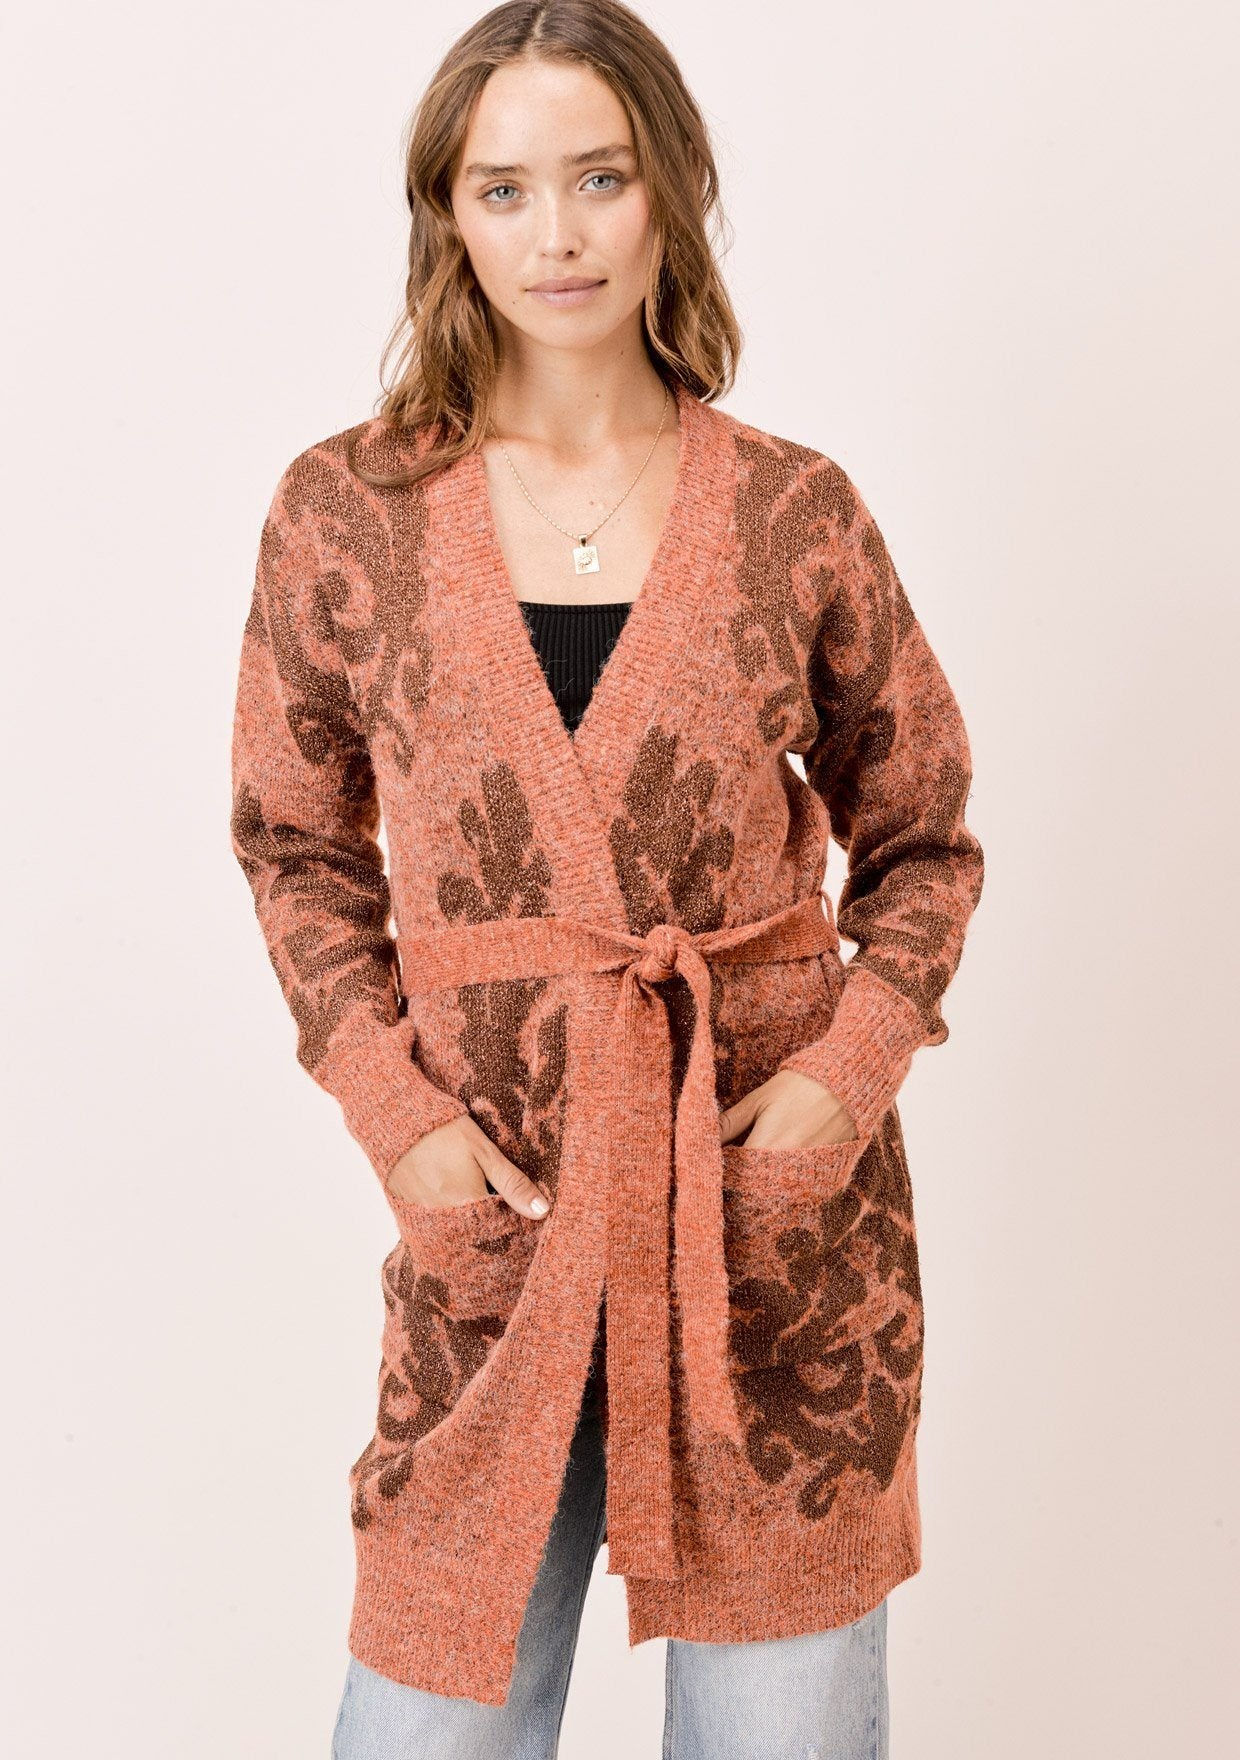 [Color: HeatherRust/Bronze] Lovestitch Long sleeve, belted, two pocket cardigan with metallic jacquard design.